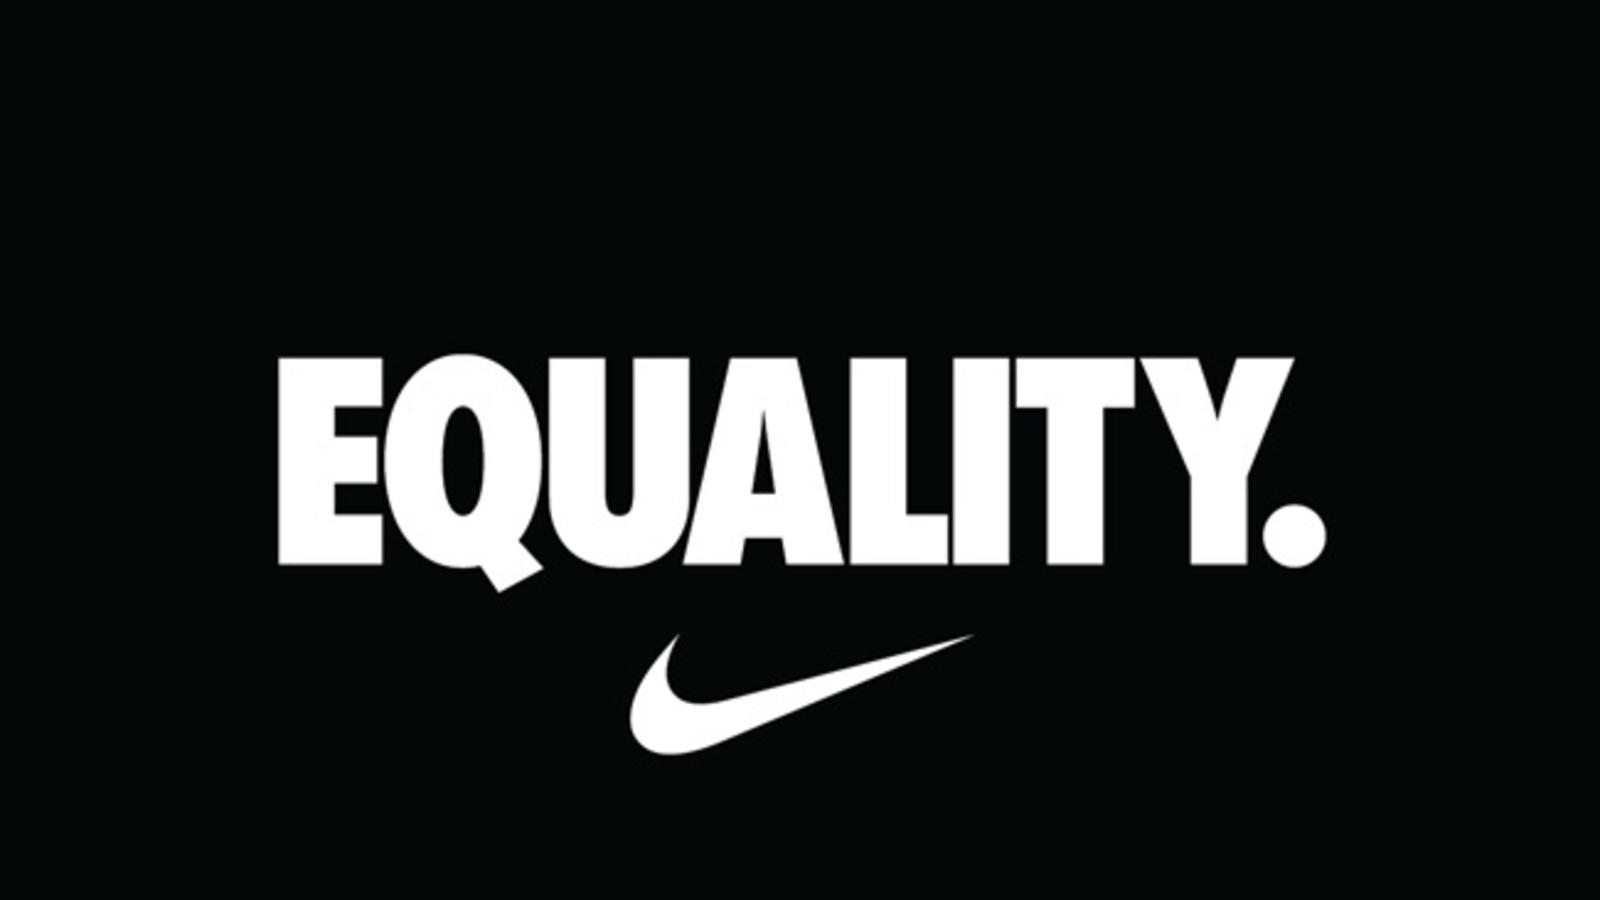 Equality logo 03 6  hd 1600